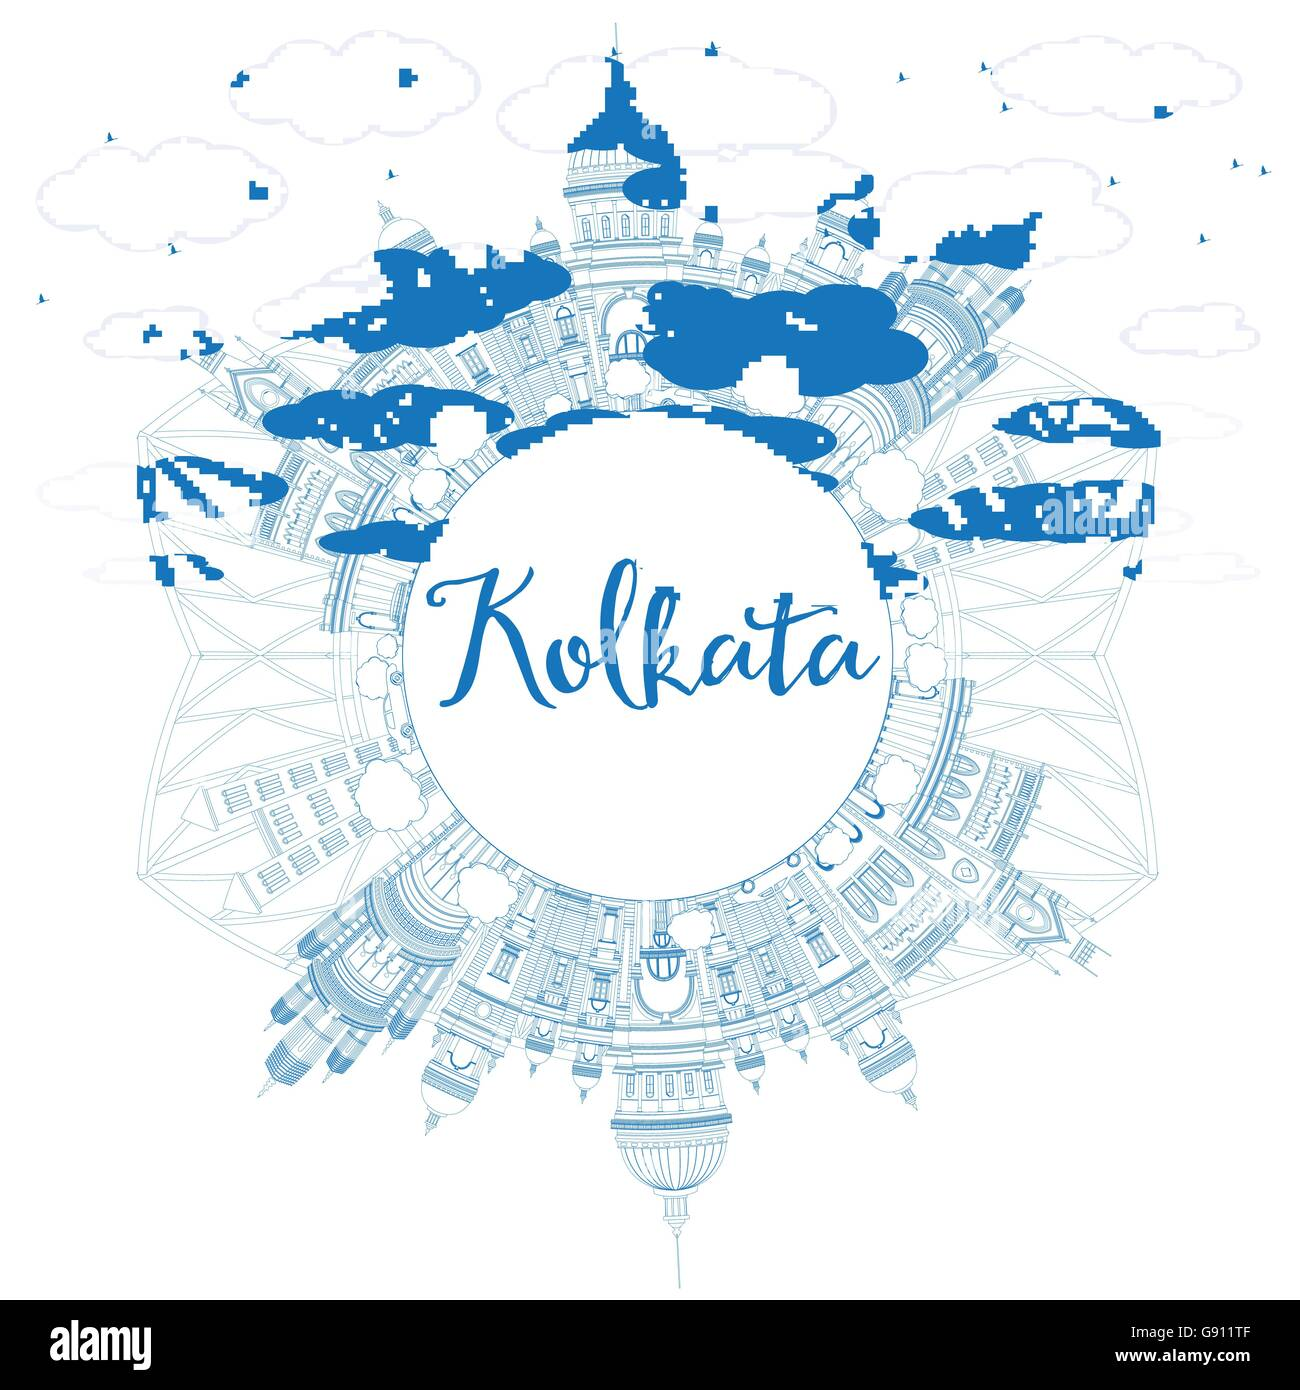 Outline Kolkata Skyline with Blue Landmarks and Copy Space. Vector Illustration. Business Travel and Tourism Concept - Stock Vector